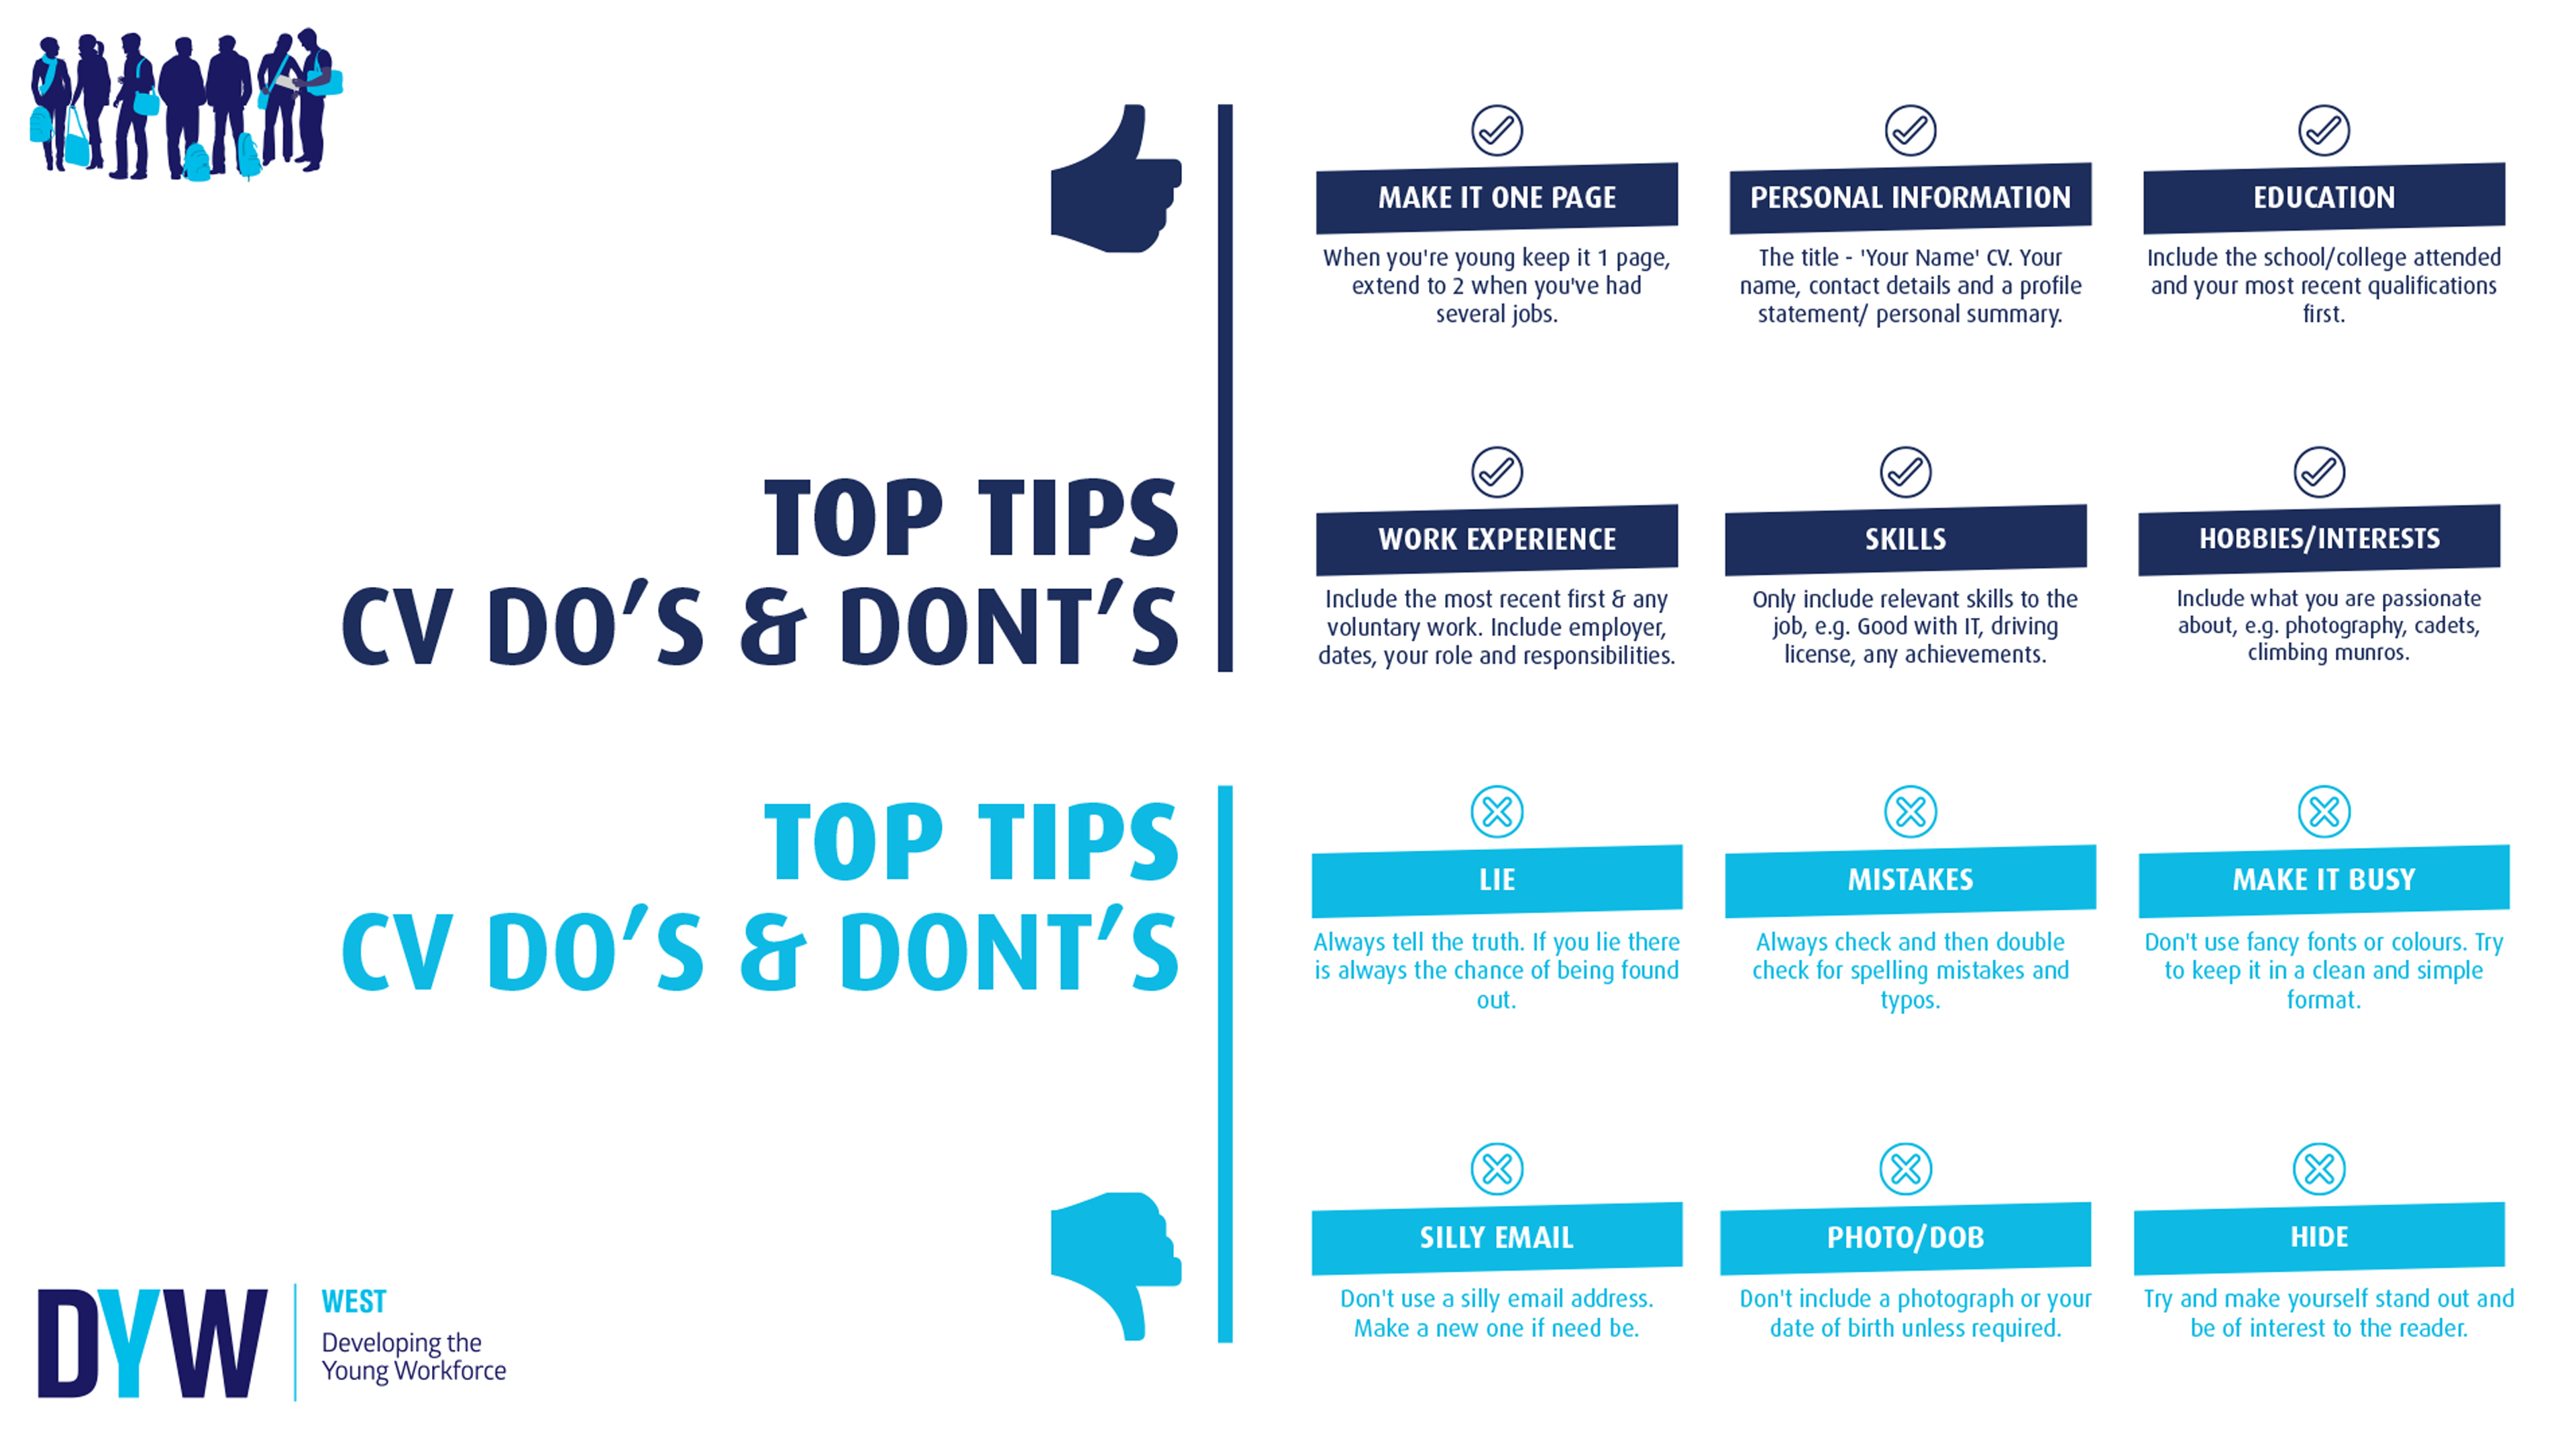 Top Tips: CV Do's & Dont's